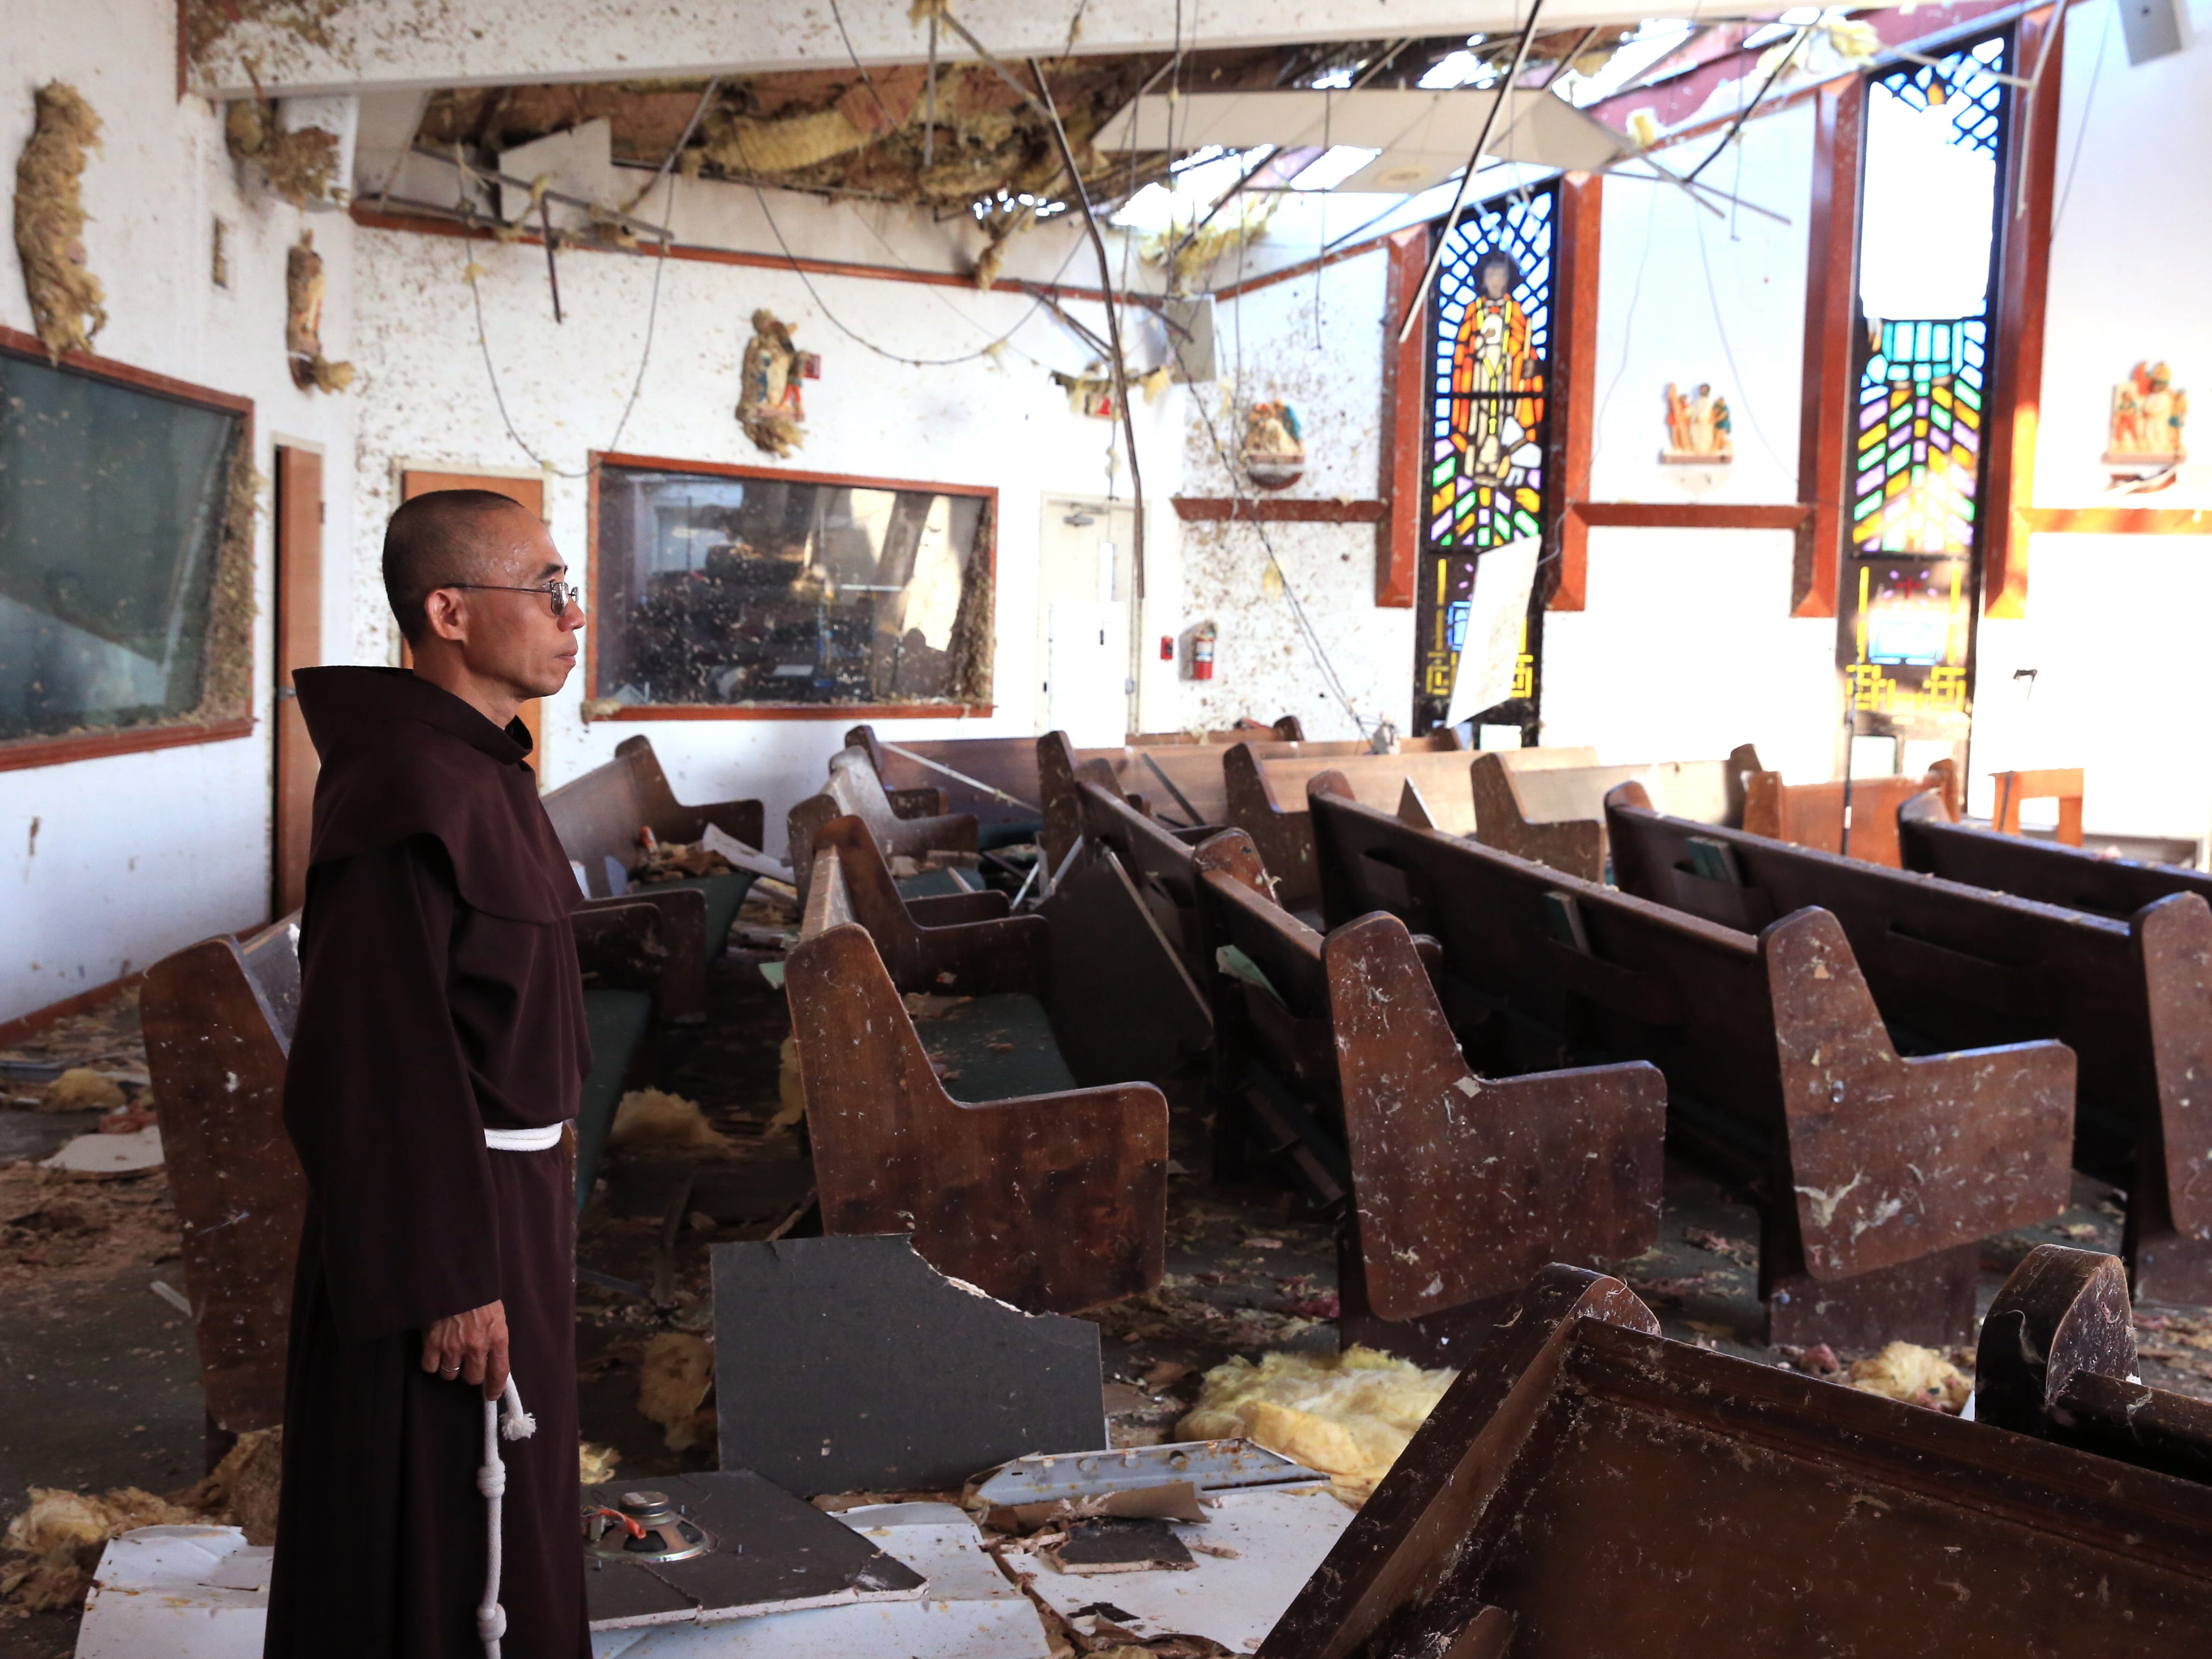 Fr. John Tran Nguyen looks around the heavily damaged St. Peter Catholic Church in Rockport on Thursday, September 14, 2017. The church was damaged during Hurricane Harvey. Nearly 18 months after the hurricane, the church is still decimated.